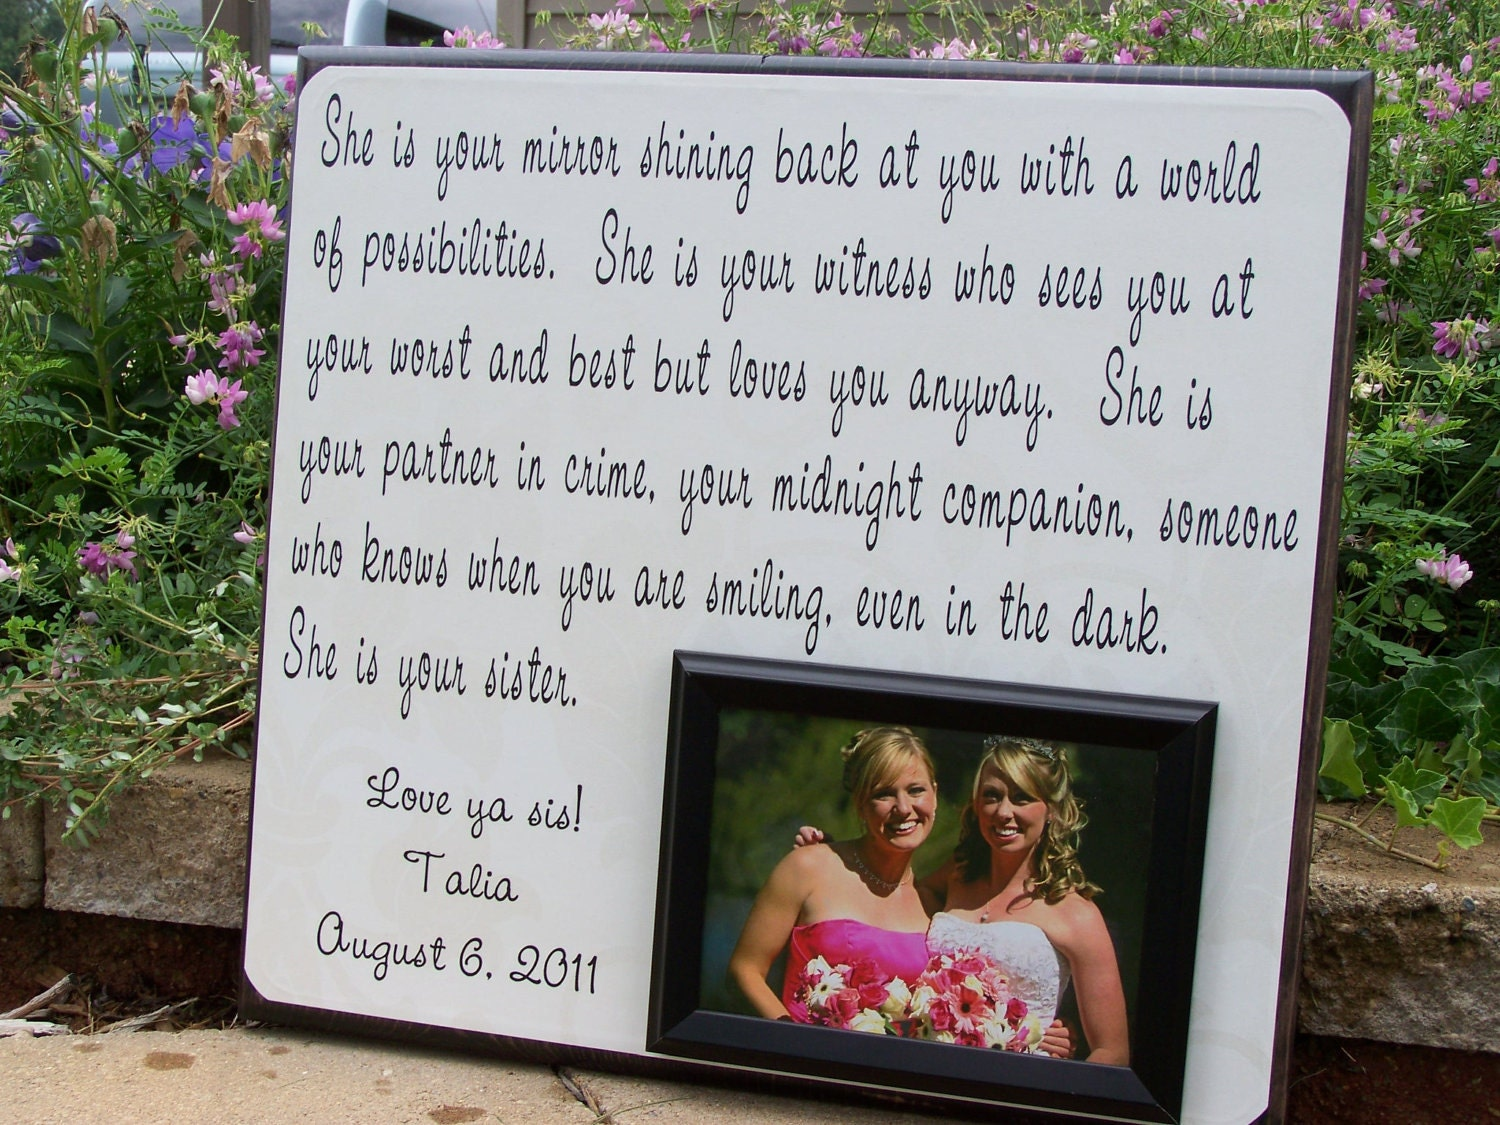 Best Wedding Gift For Cousin Sister : Handmade Wedding Photo Frame, She is Your Mirror, Sister, Bridesmaid ...